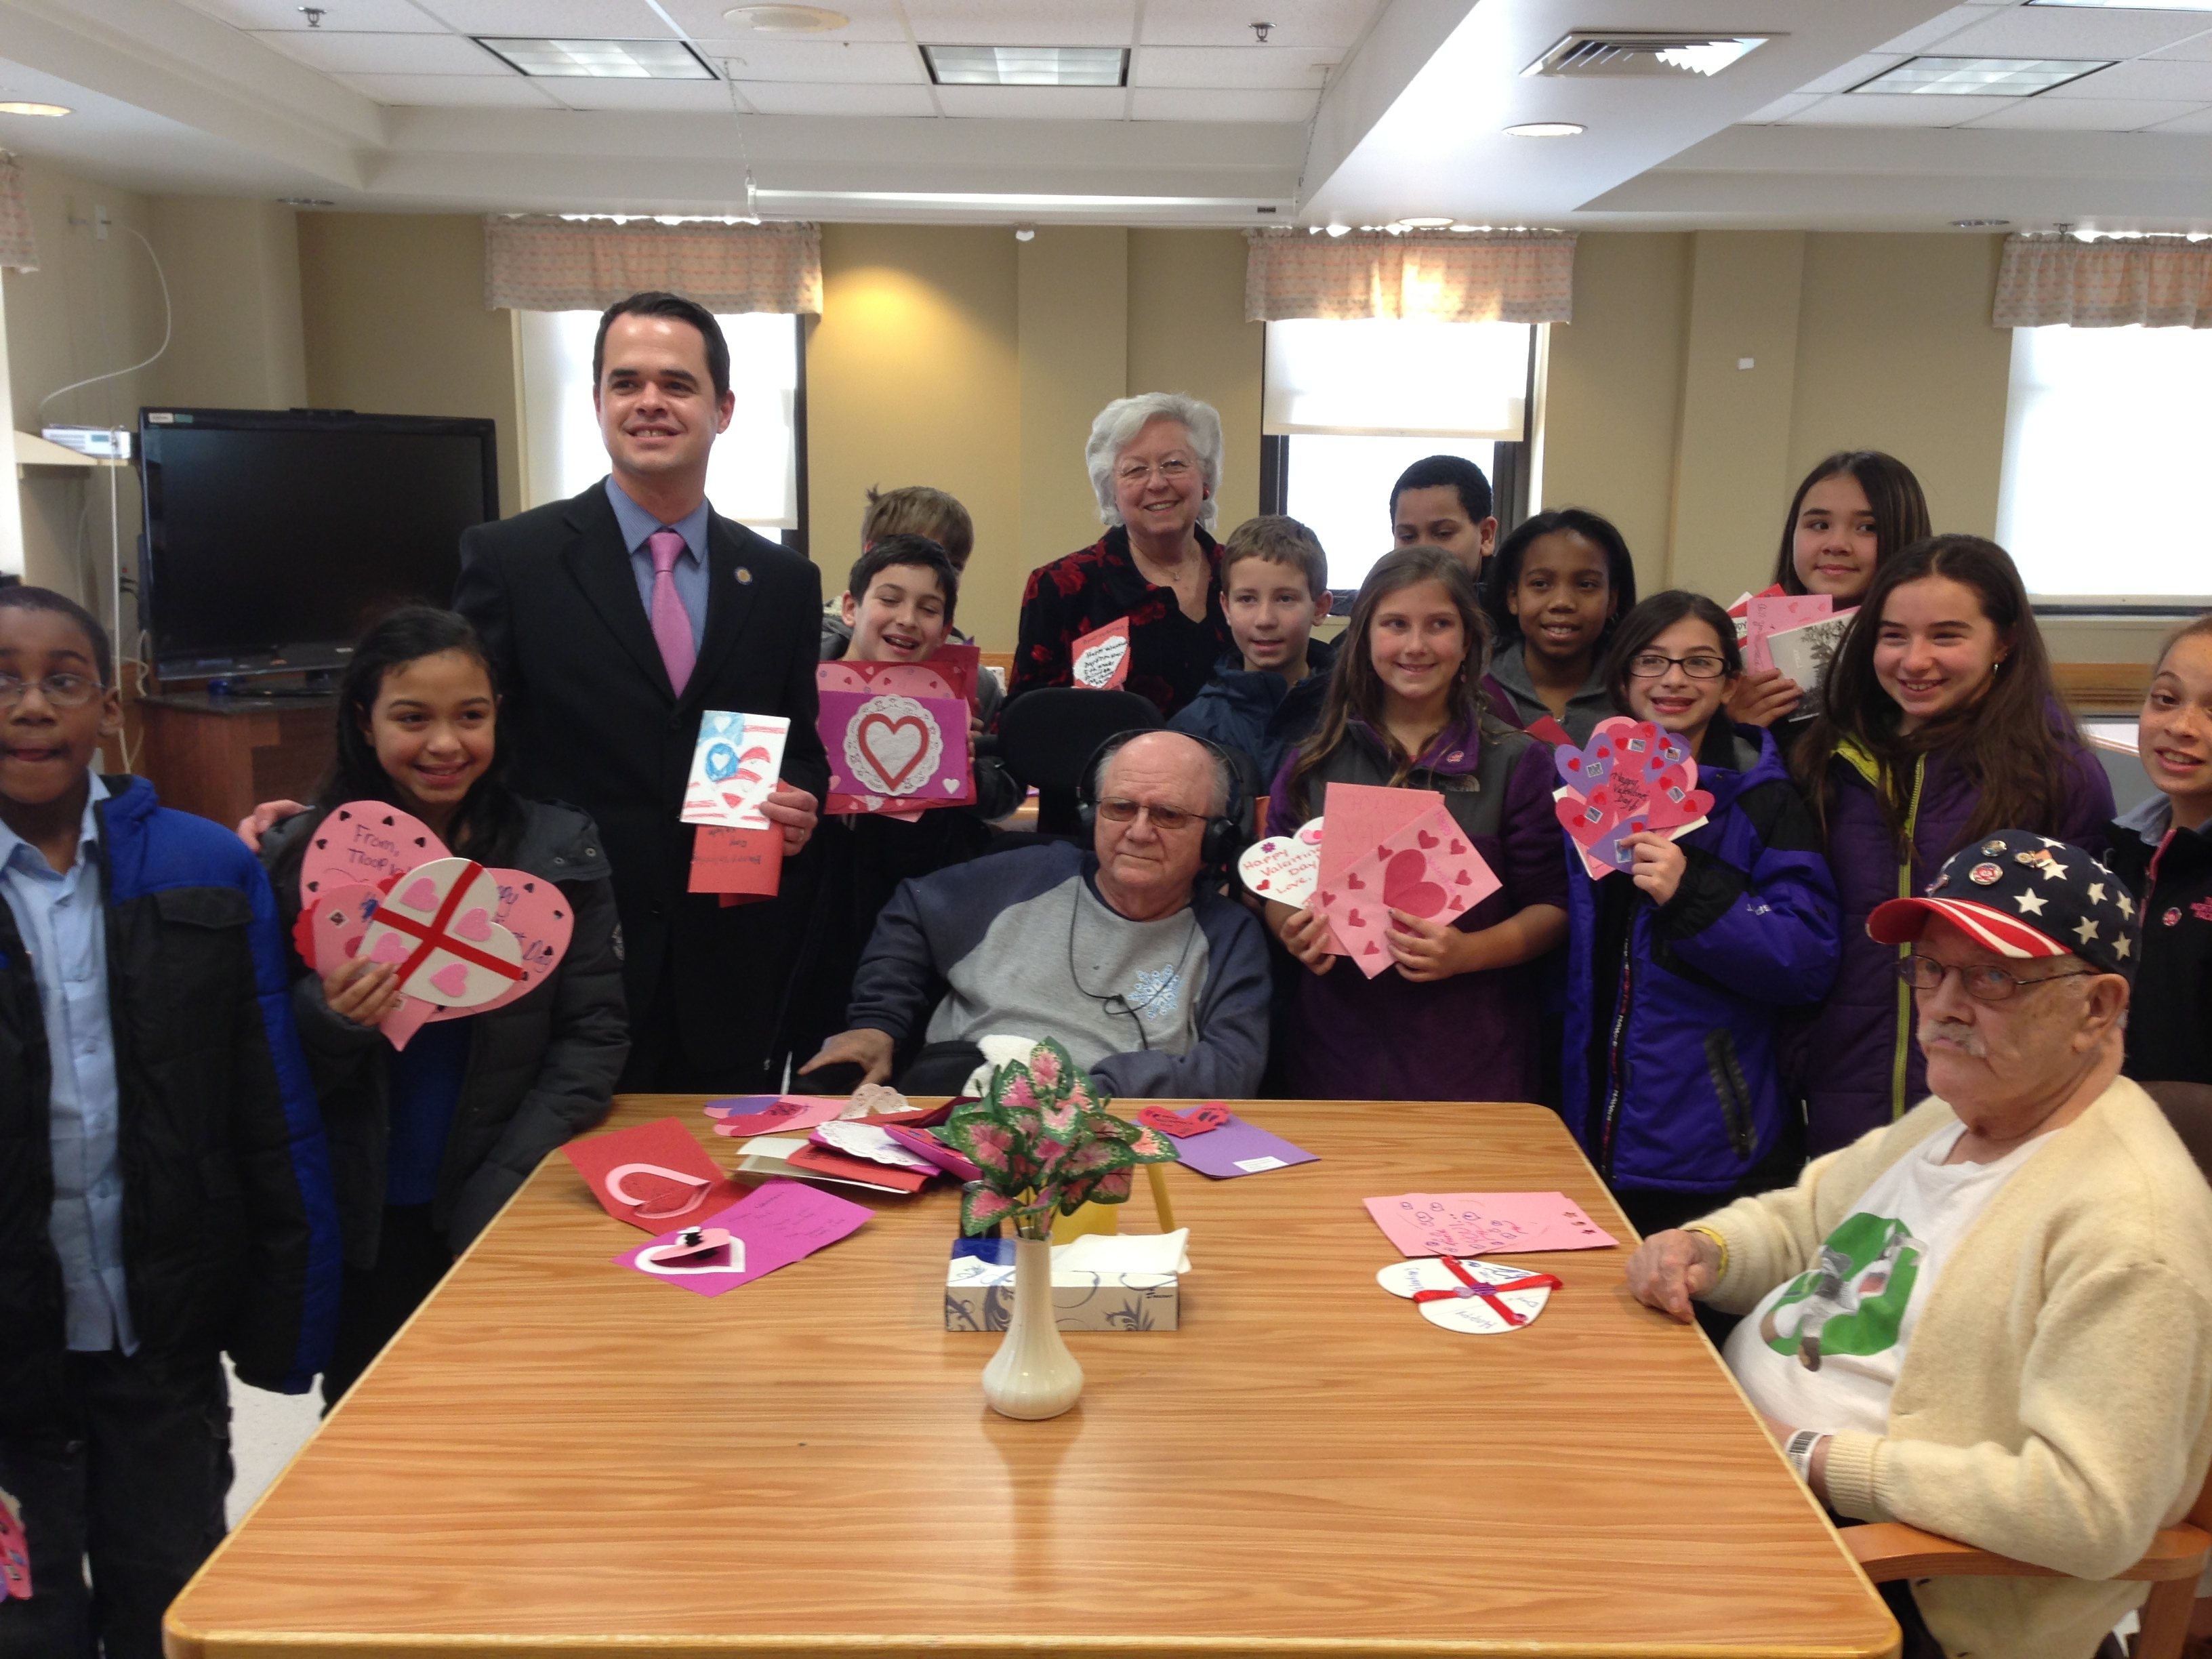 Sandy is joined by Senator David Carlucci at the Montrose VA hospital with Ossining 5th graders to deliver Valentines to Veterans